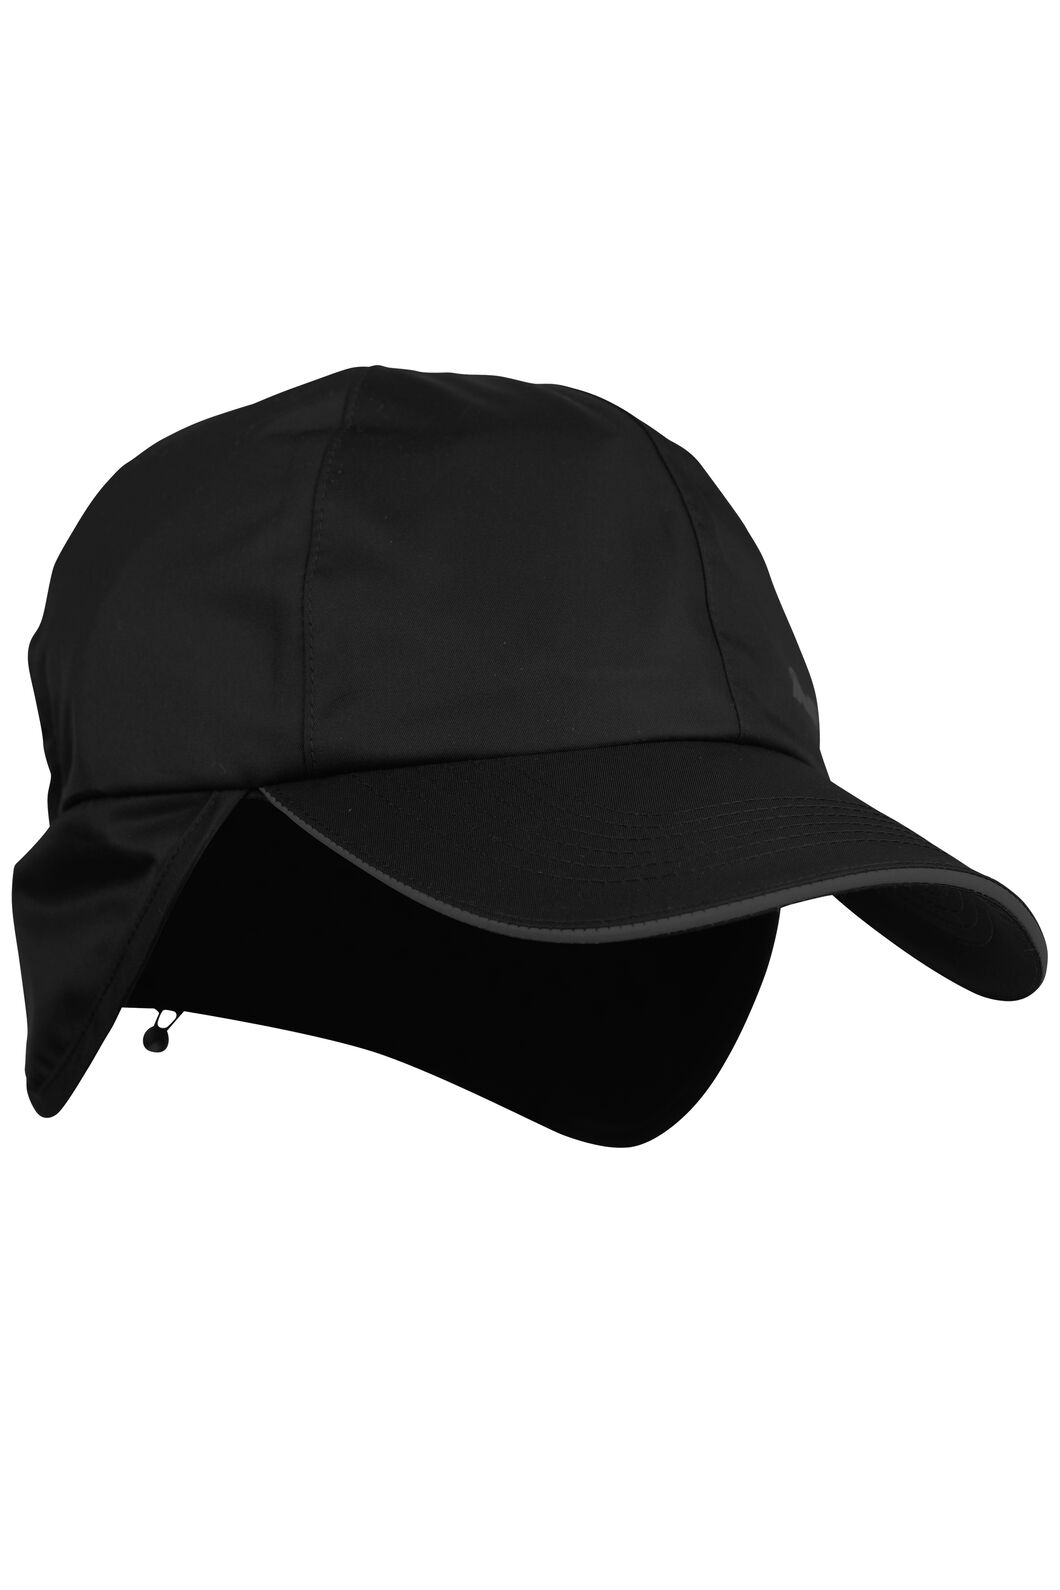 Waterproof Cap, Black, hi-res